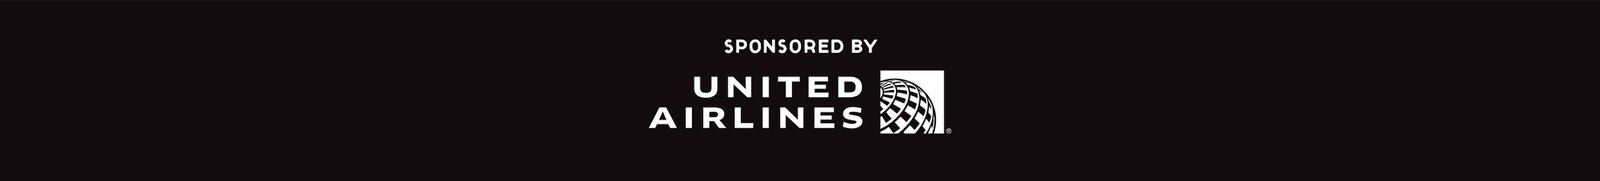 Winq en United Airlines presenteren de Diversity Awards Logo